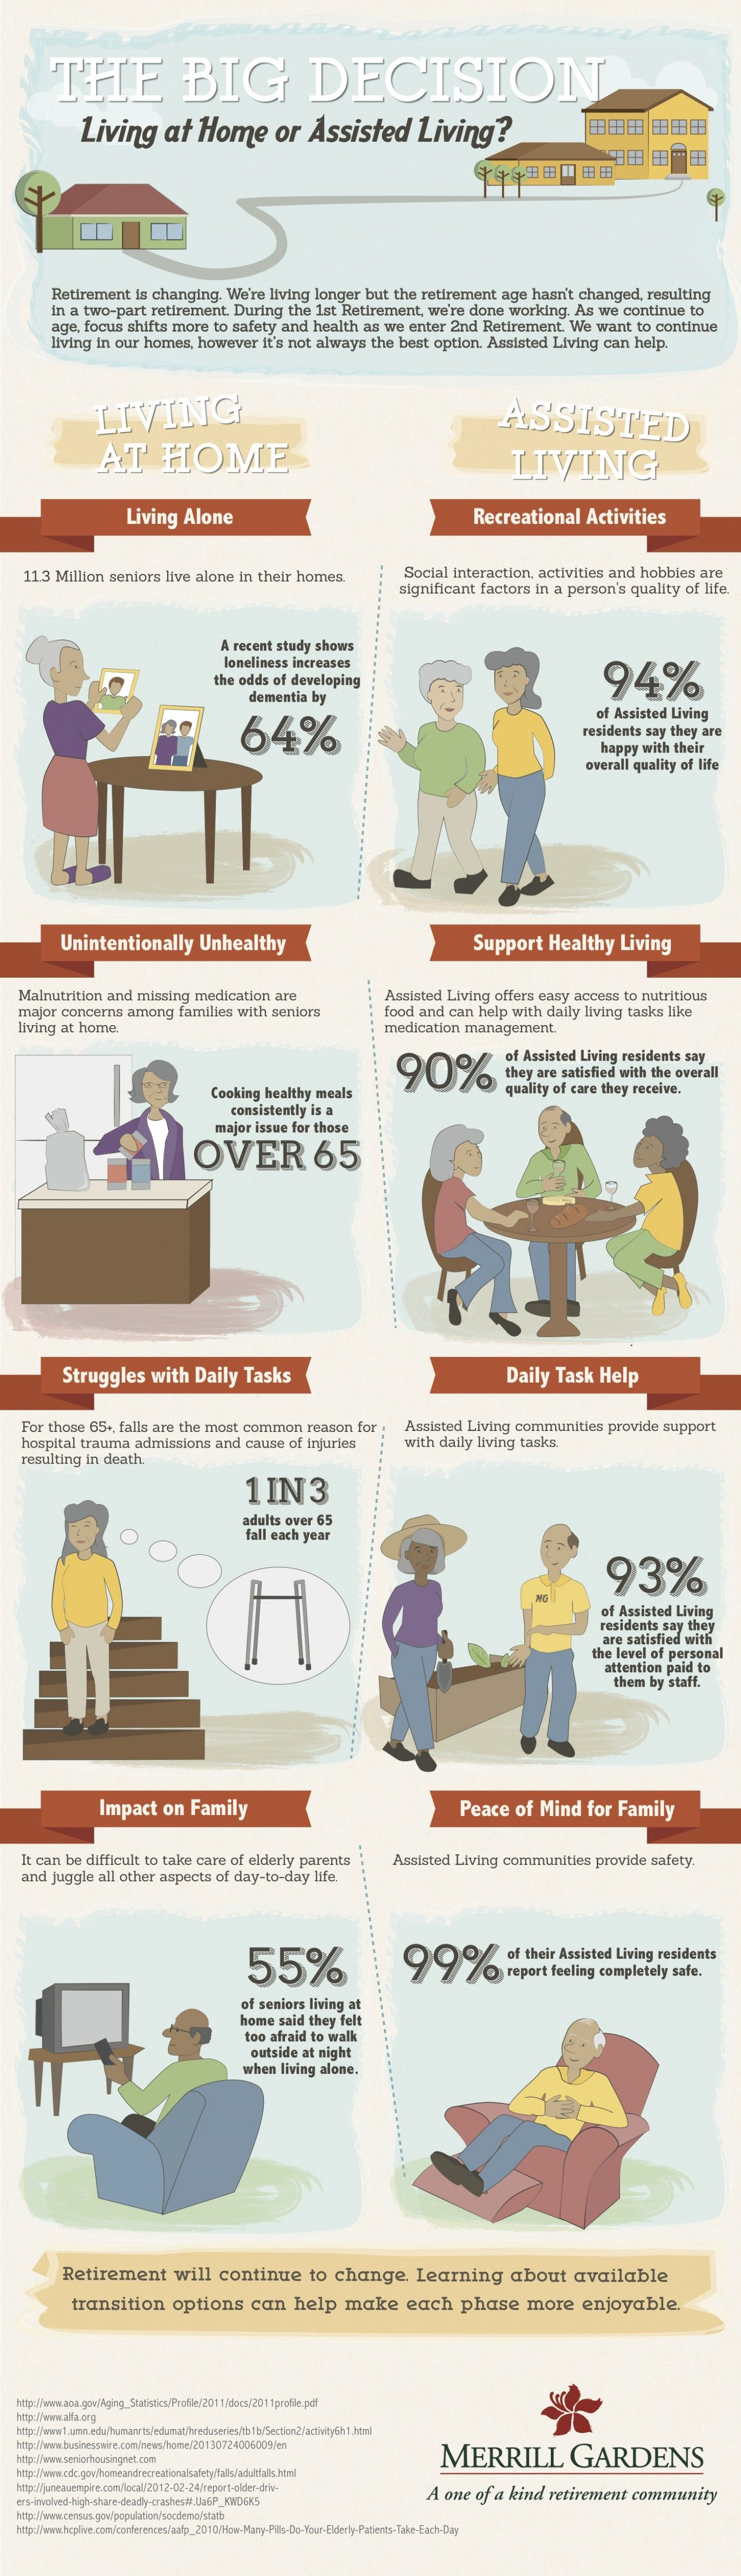 The Big Decision: Living At Home Or Assisted Living? | New Visions Healthcare Blog #healthcare